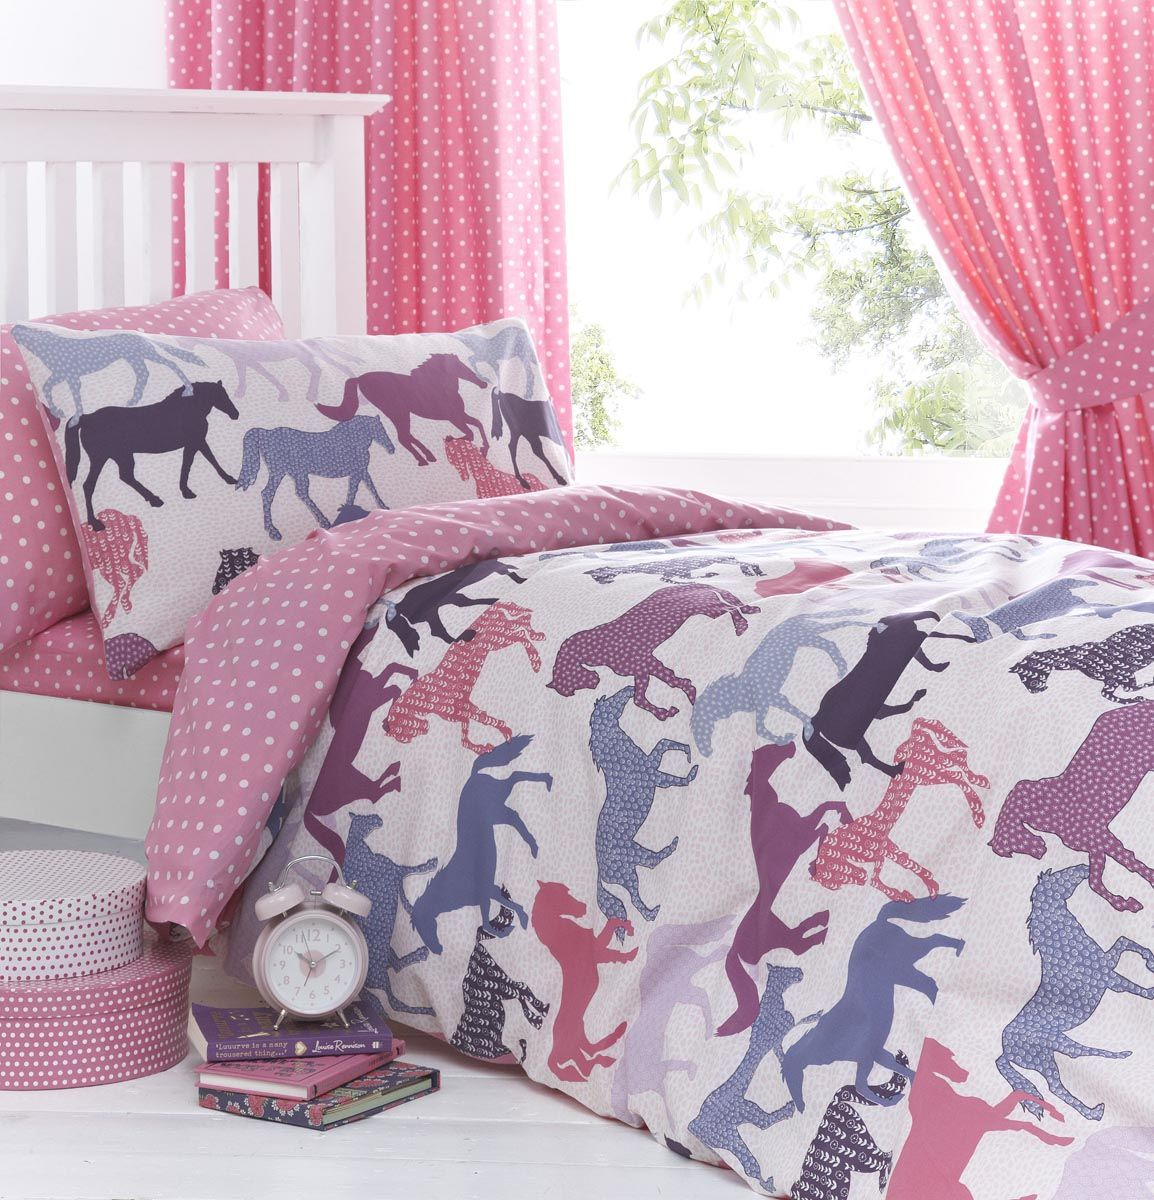 Pink bed sets for girls - Gallop Pink Girls Horse Bedding Duvet Cover Set Sheet Or Curtains